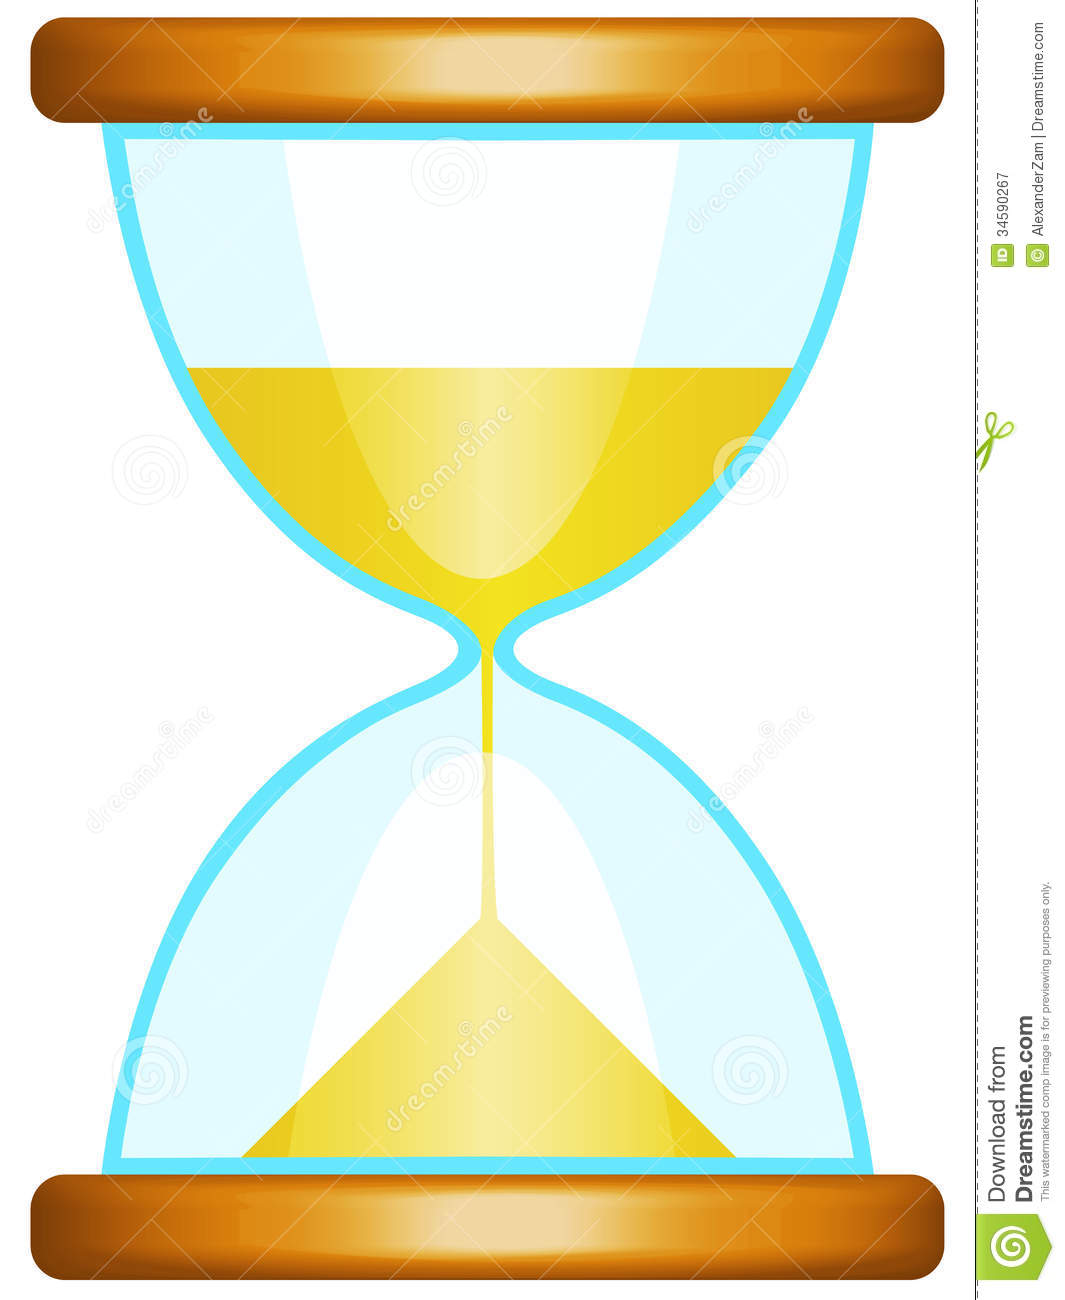 sand glass stock illustration illustration of icon  clock 34590267 Old Fashion Camera Cartoon Old Time Camera